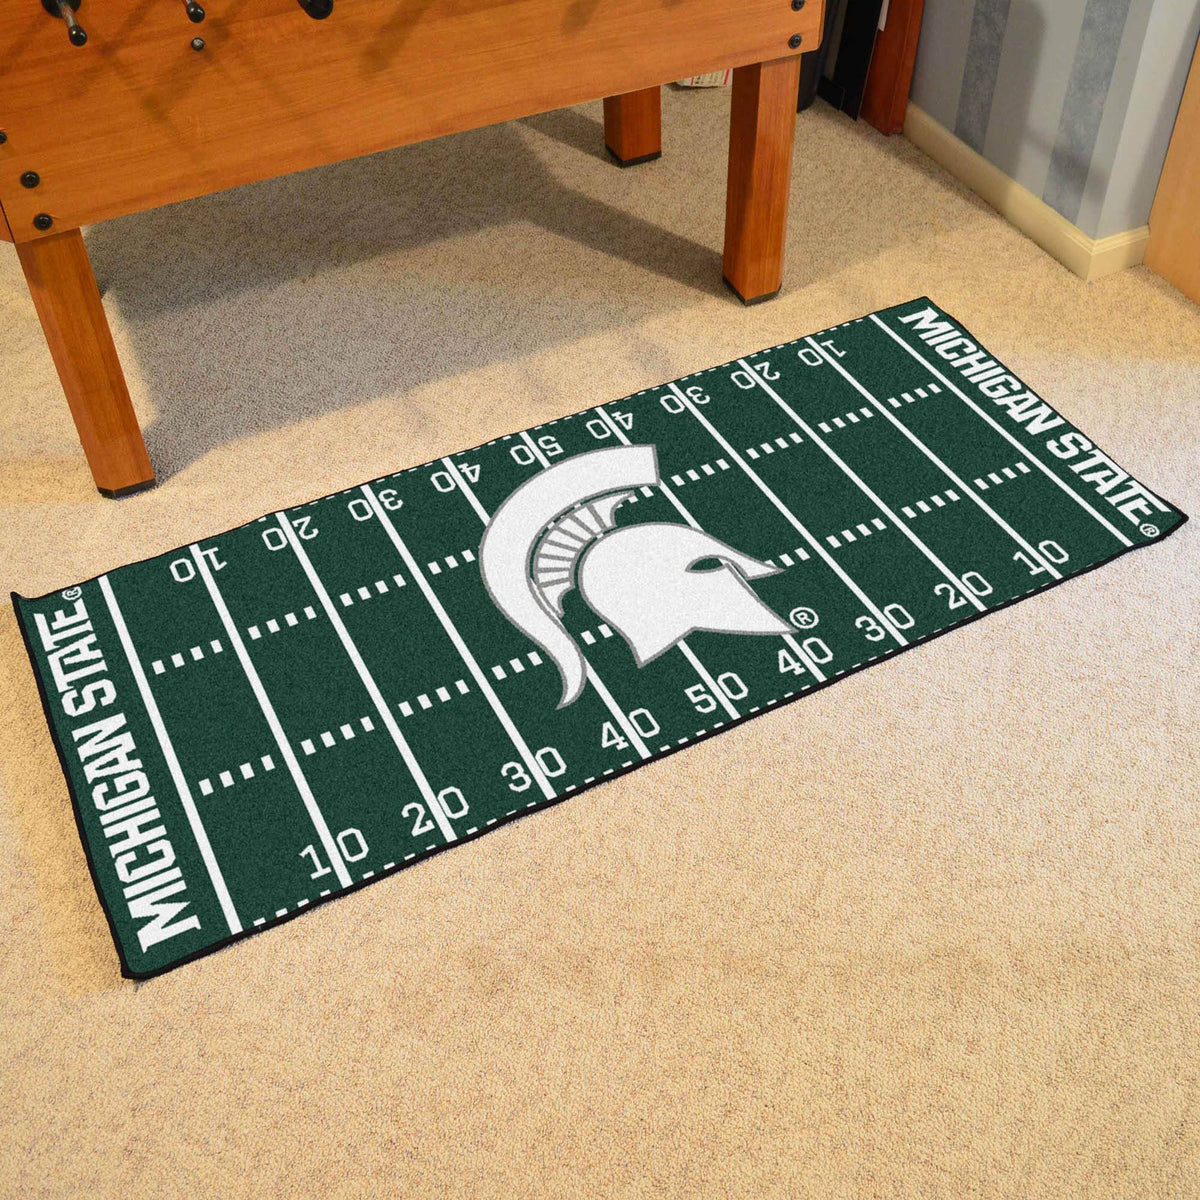 Collegiate - Football Field Runner Collegiate Mats, Rectangular Mats, Football Field Runner, Collegiate, Home Fan Mats Michigan State